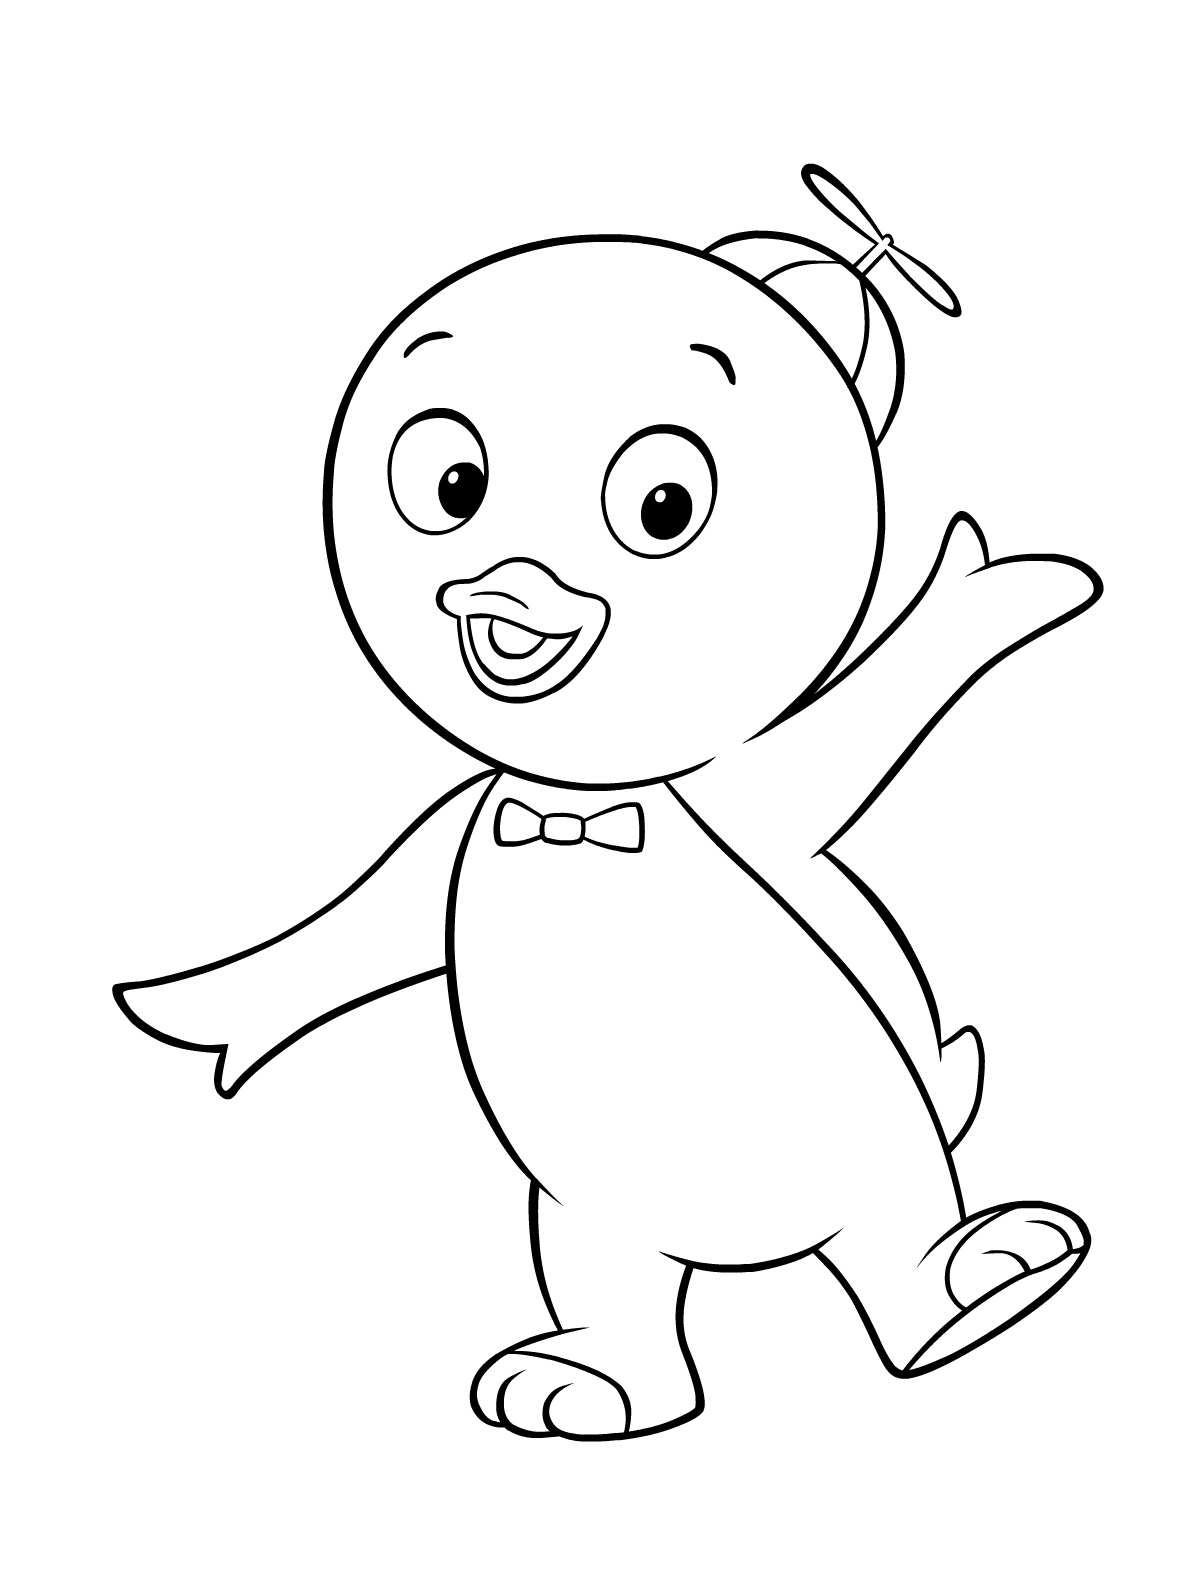 Free Printable Backyardigans Coloring Pages For Kids Coloring Page Printable